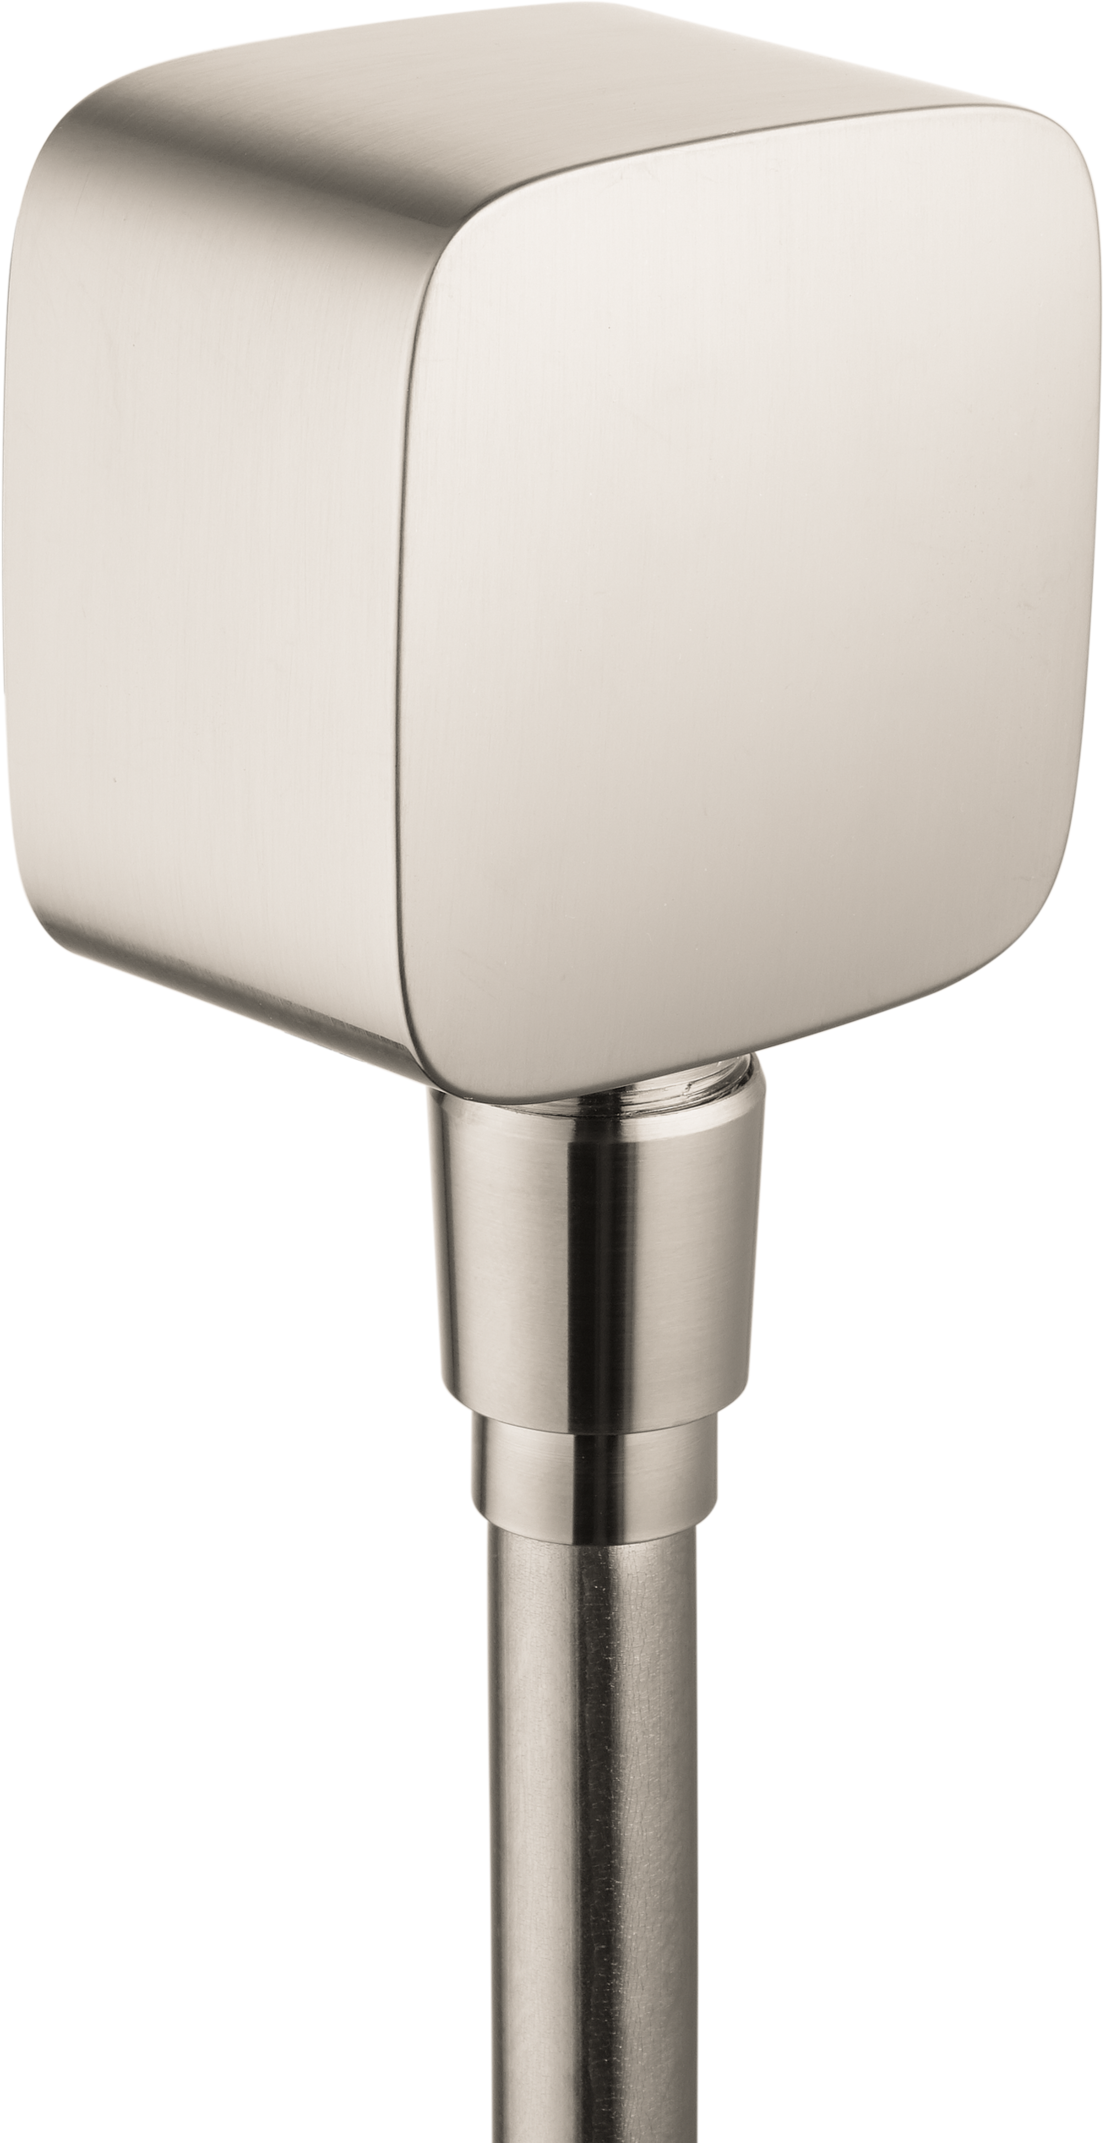 Axor AXOR SoftCube Wall Outlet with Check Valves